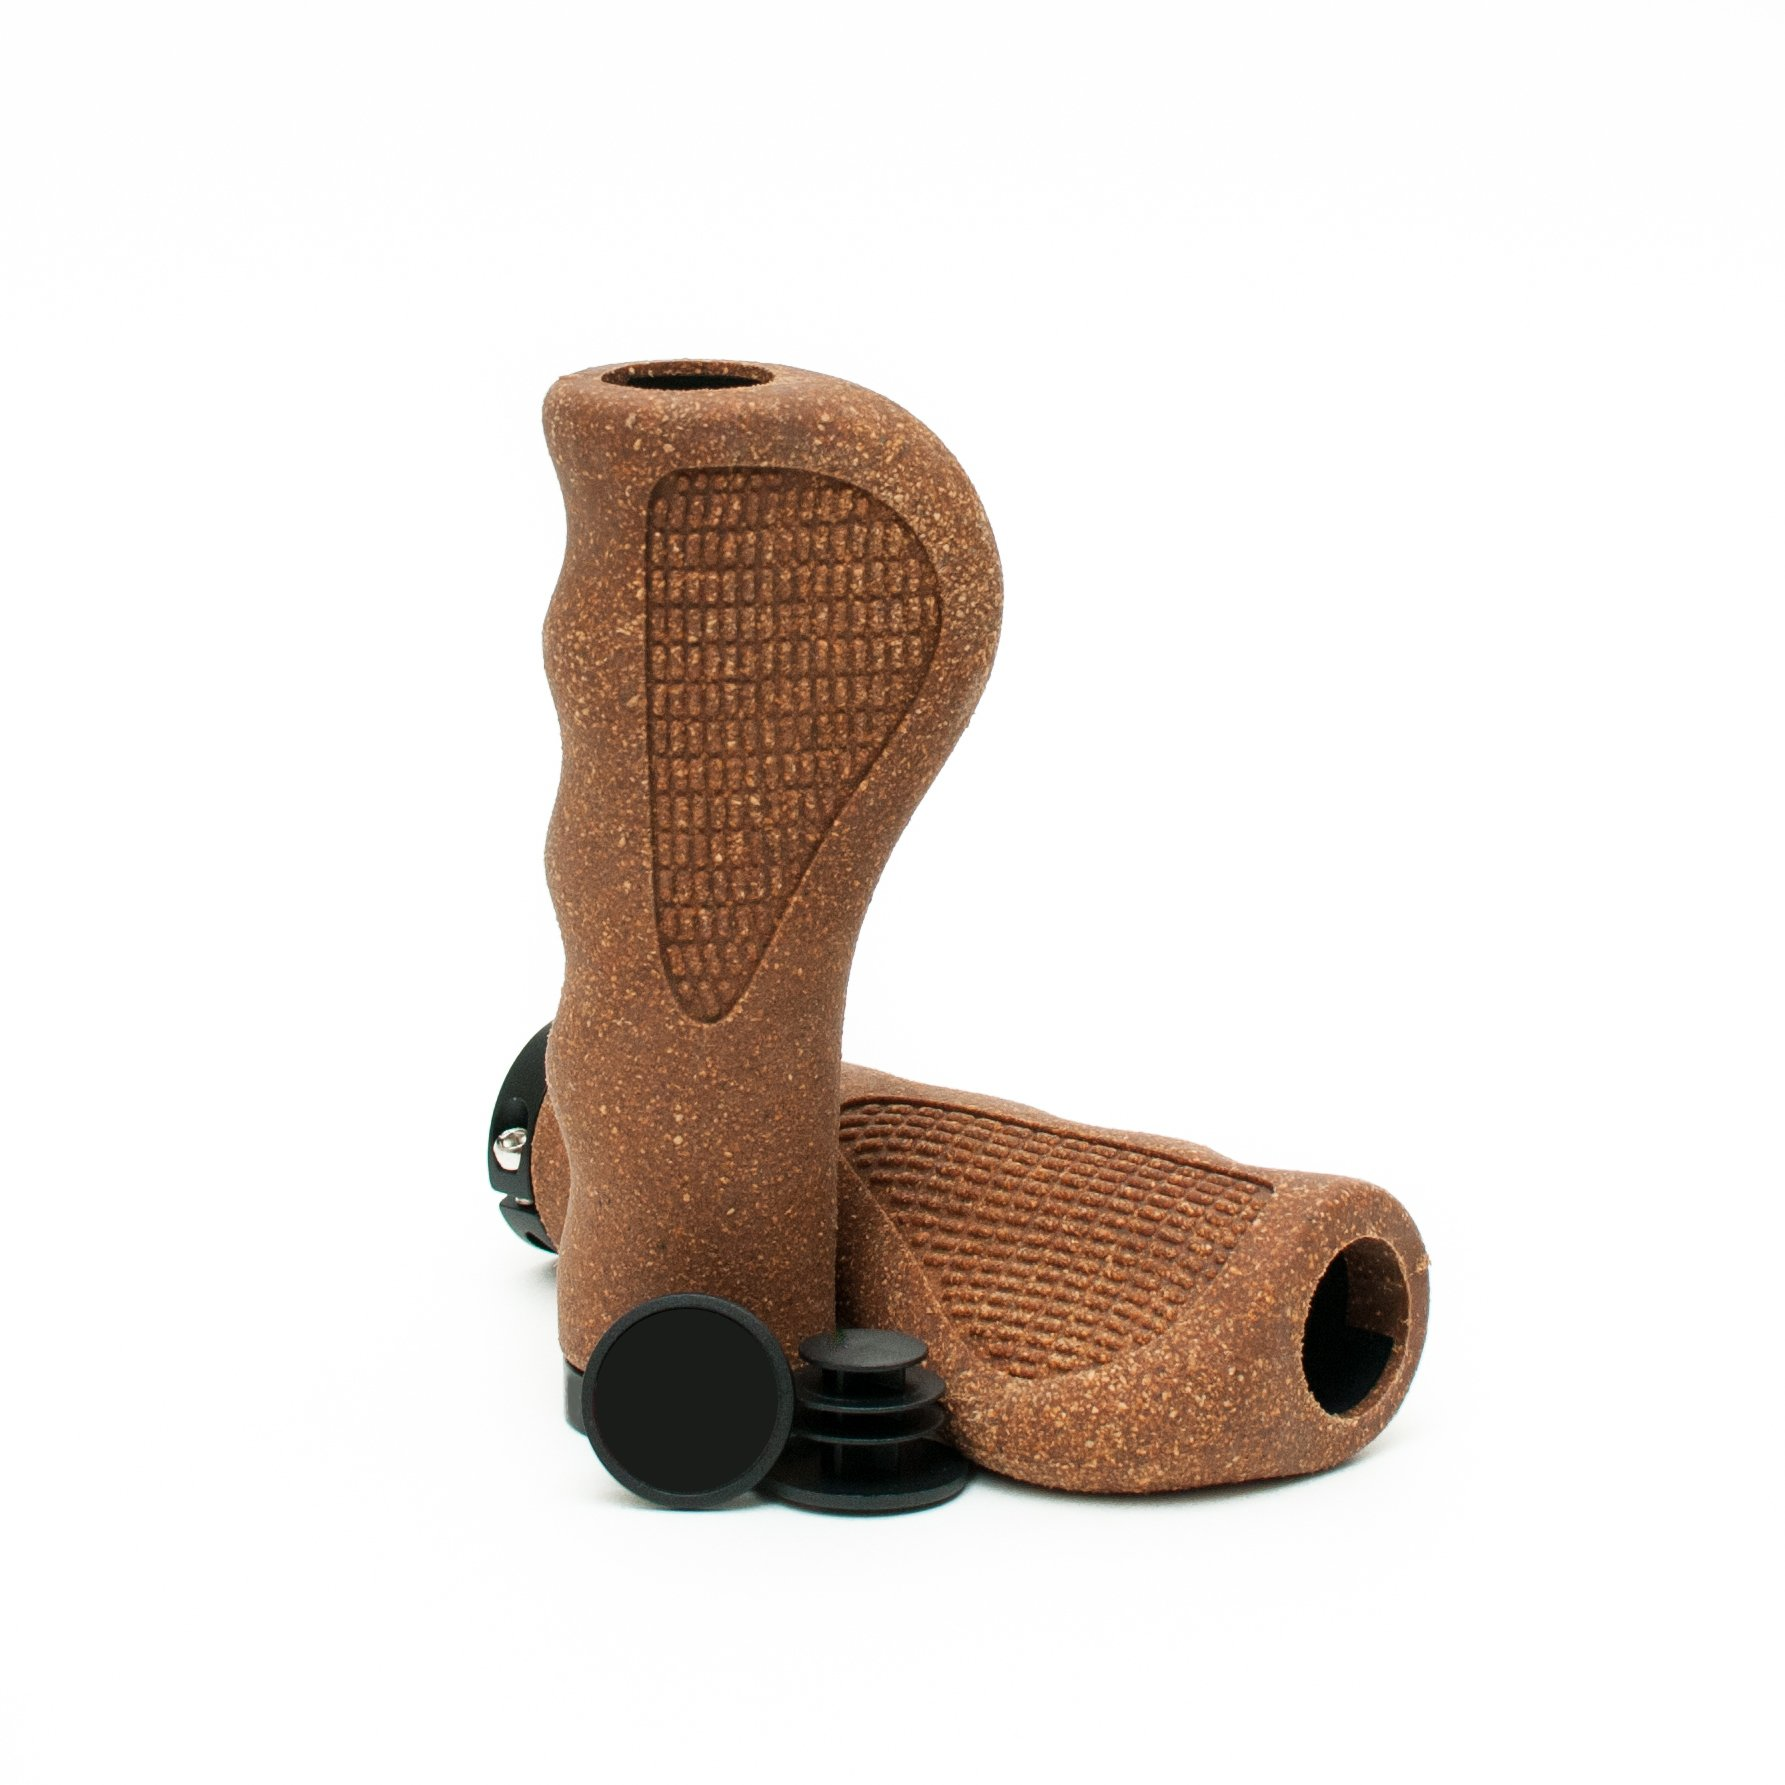 Asti Natural Cork Foam Bicycle Grips – Eco-Friendly Bike Handlebar Grips With Ergonomic Design For Comfort, Shock Absorbing And Non-Slip, Vintage Style For Cruiser And Fixie, Easy Installation by Asti (Image #1)